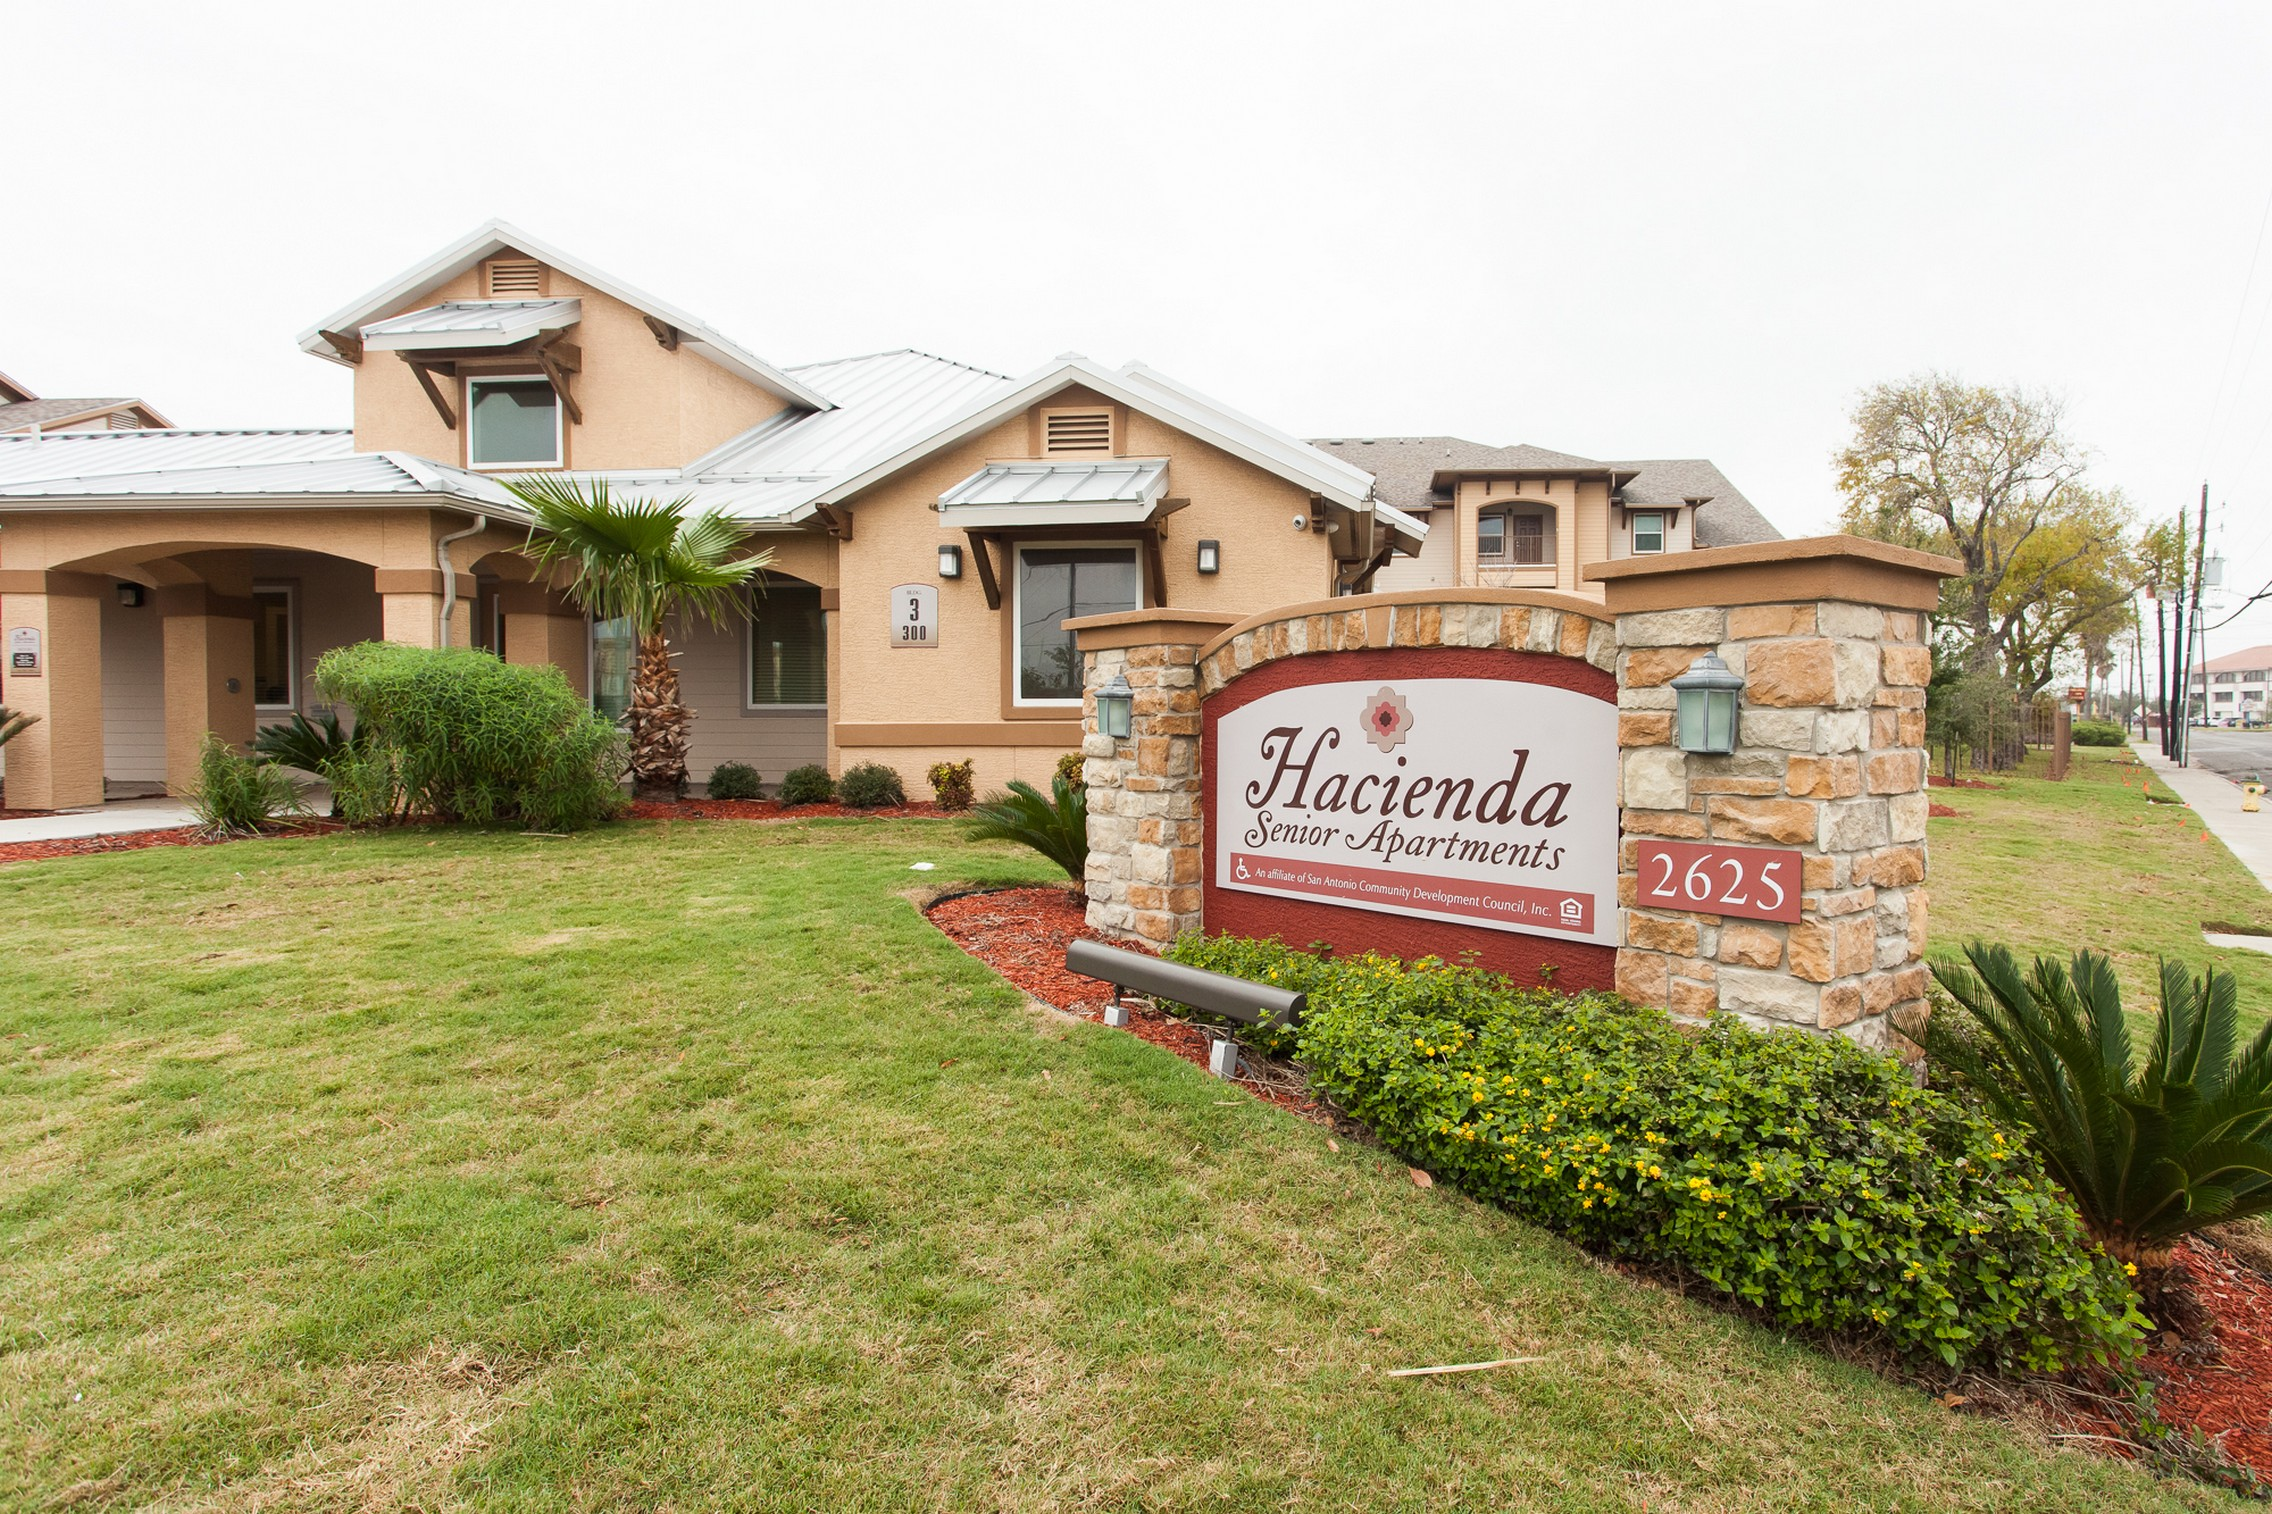 Hacienda Senior Apartments